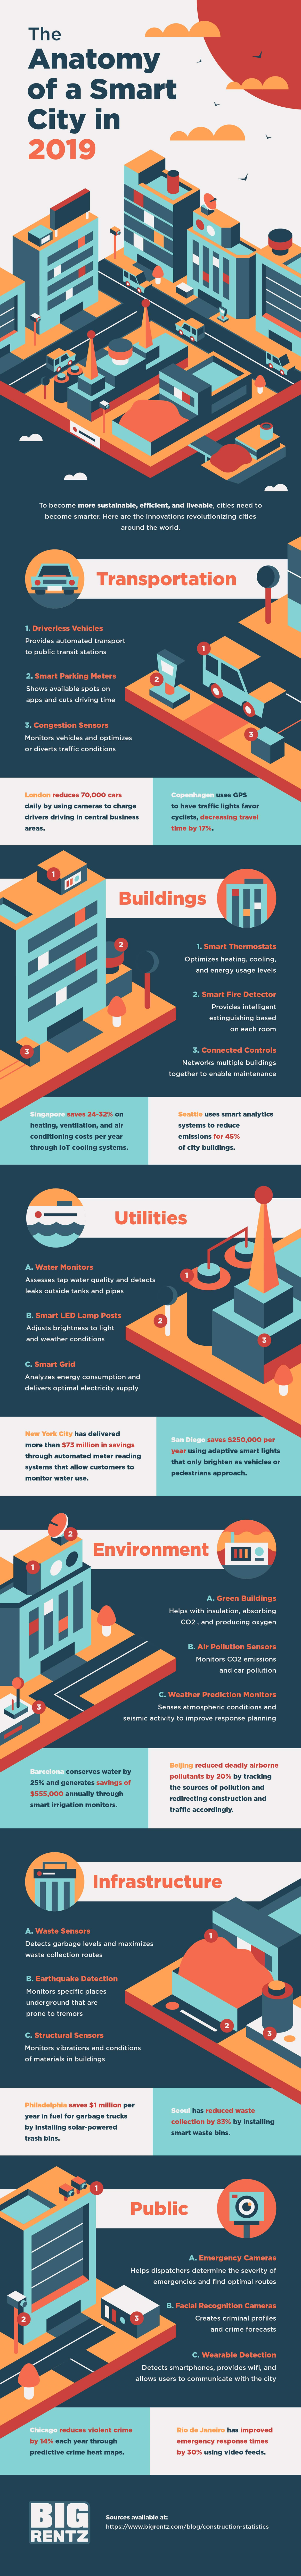 Infographic describing the anatomy of a smart city in 2019, including its transportation, buildings, utilities, environment, infrastructure, and public services.